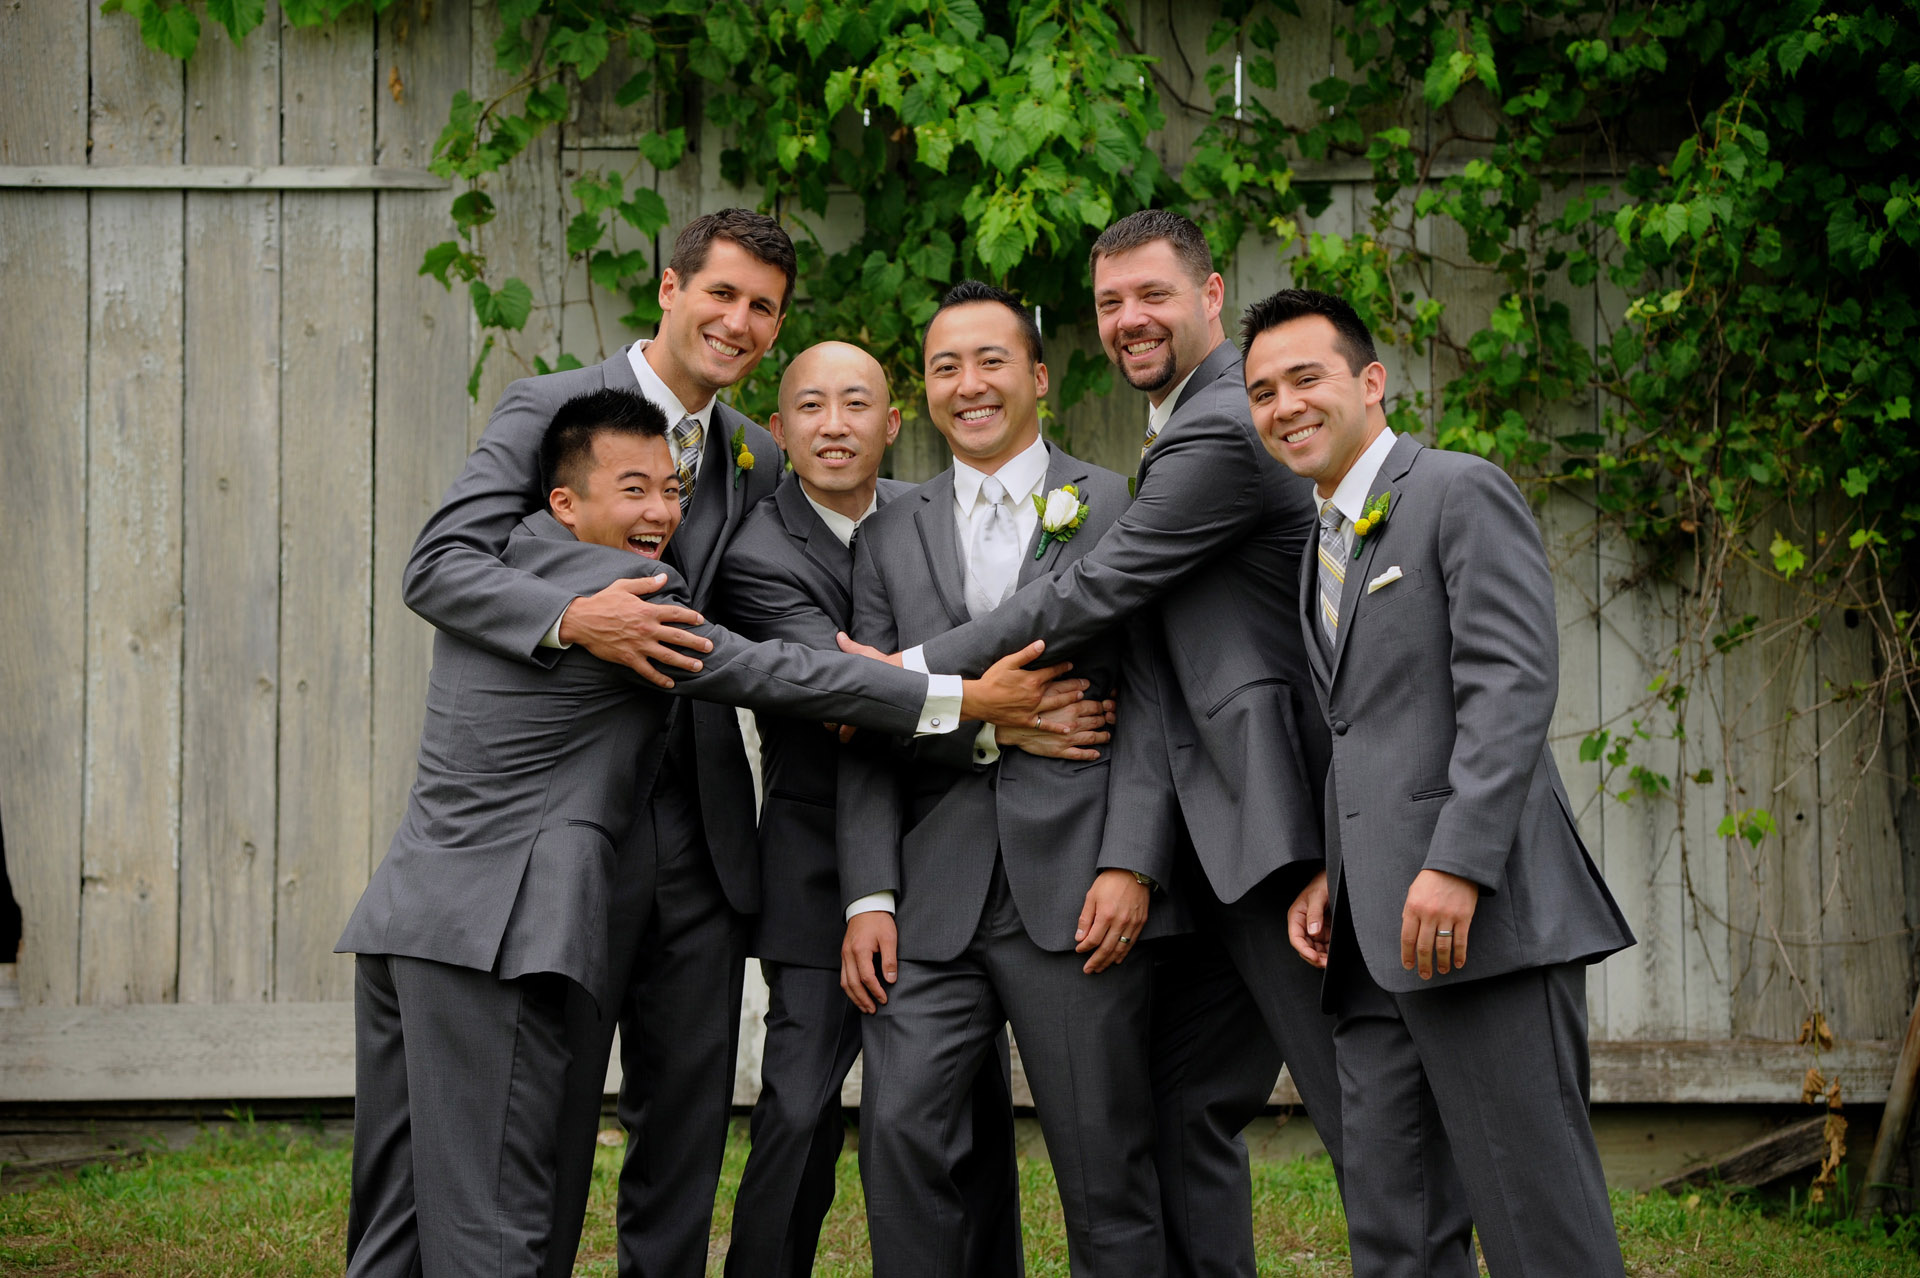 Pine Trace Golf Club wedding photographer's photo of the groom and groomsmen goofing off before their Troy , Michigan wedding.